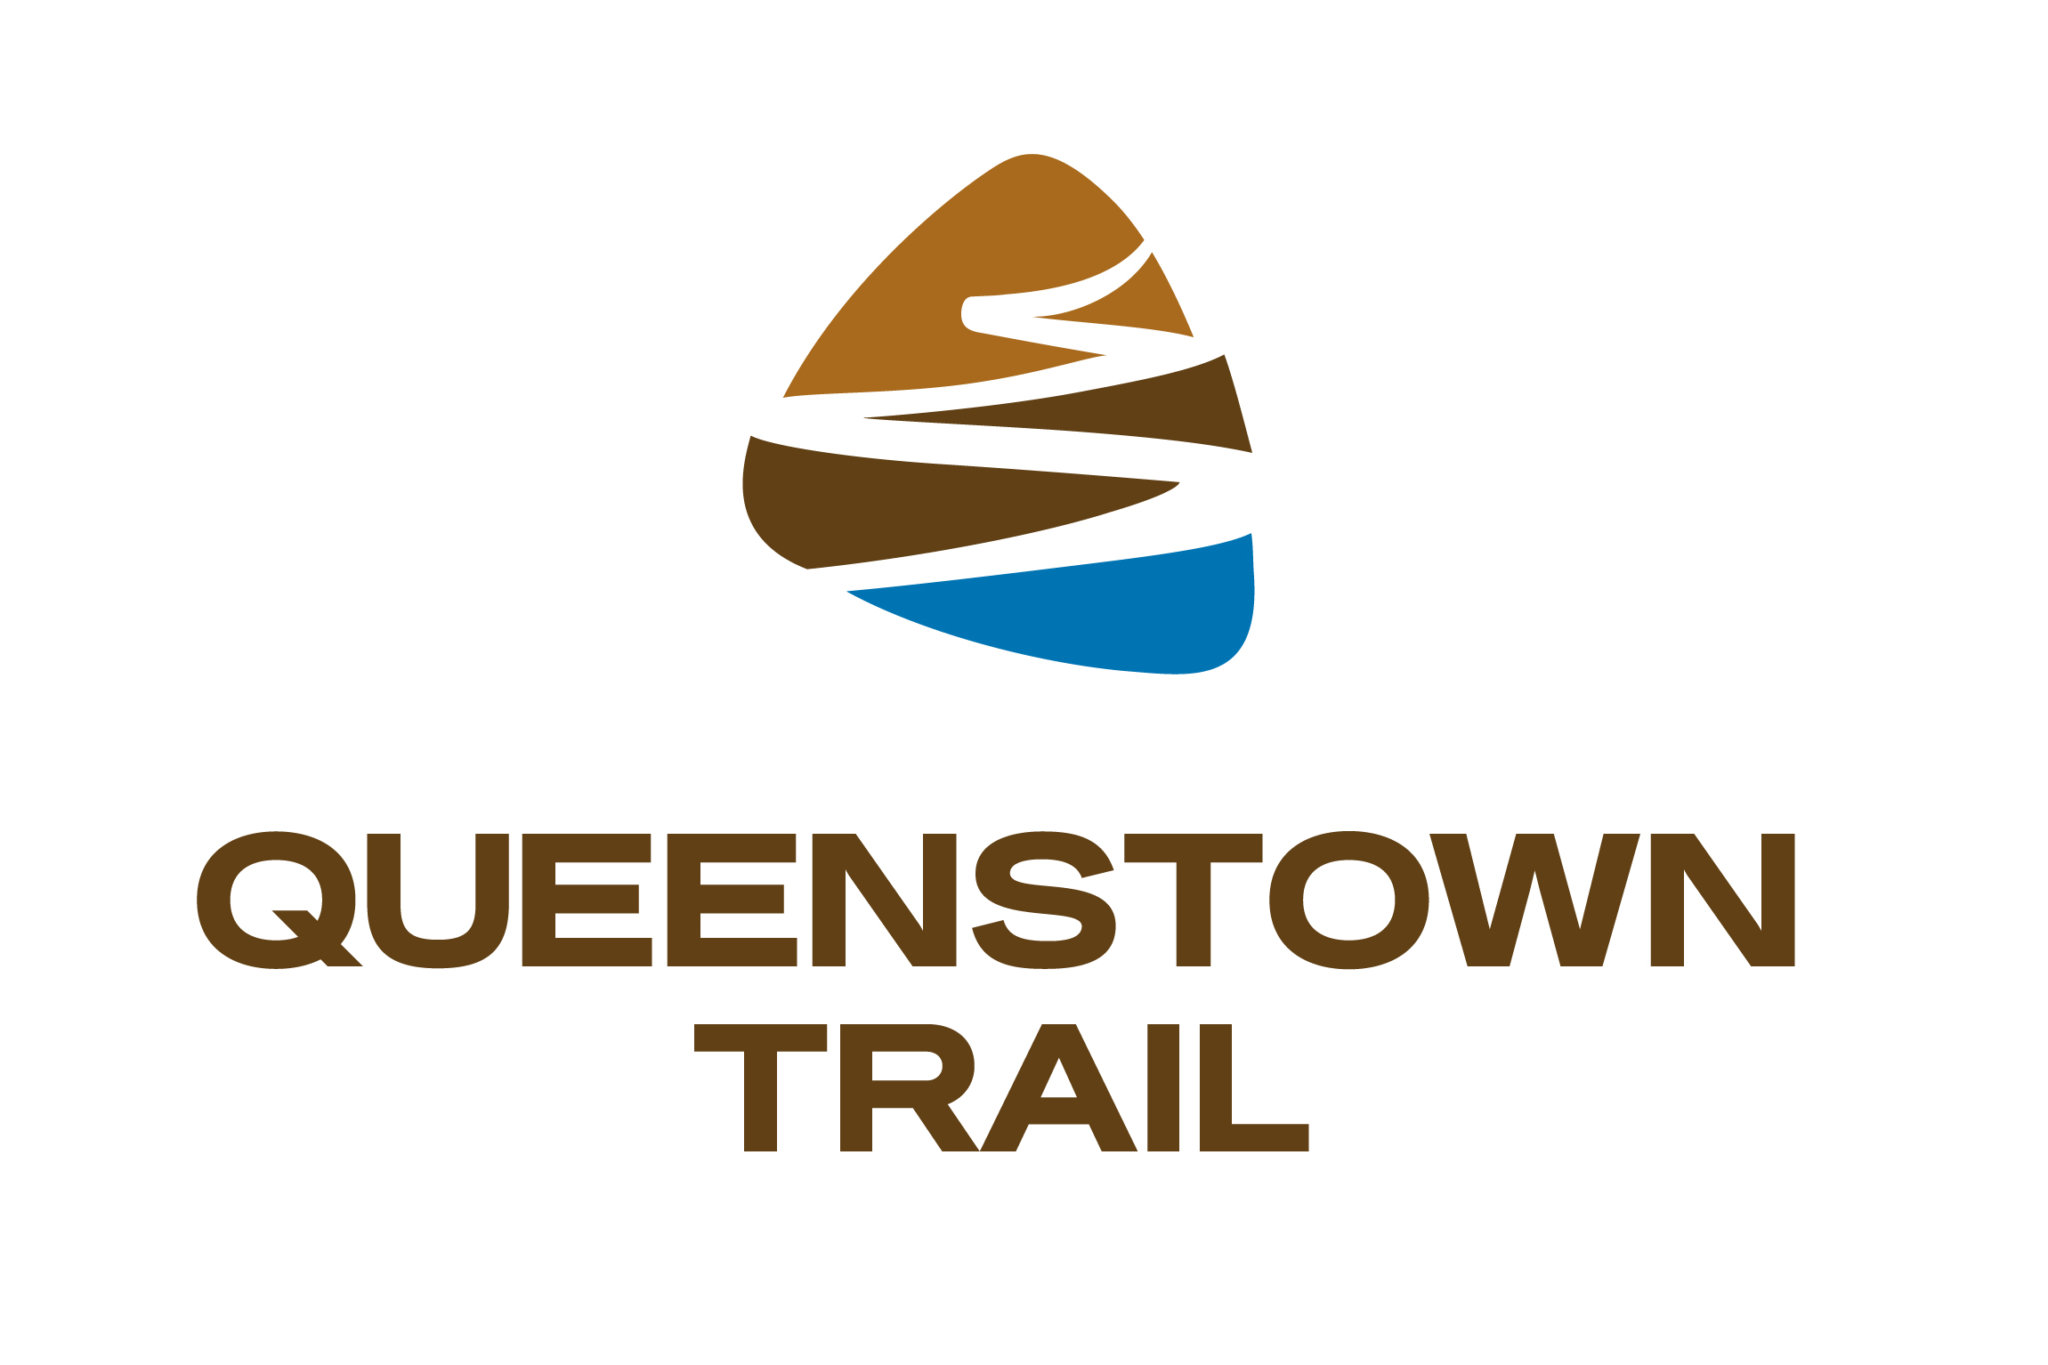 Queenstown Trail Cycling Track